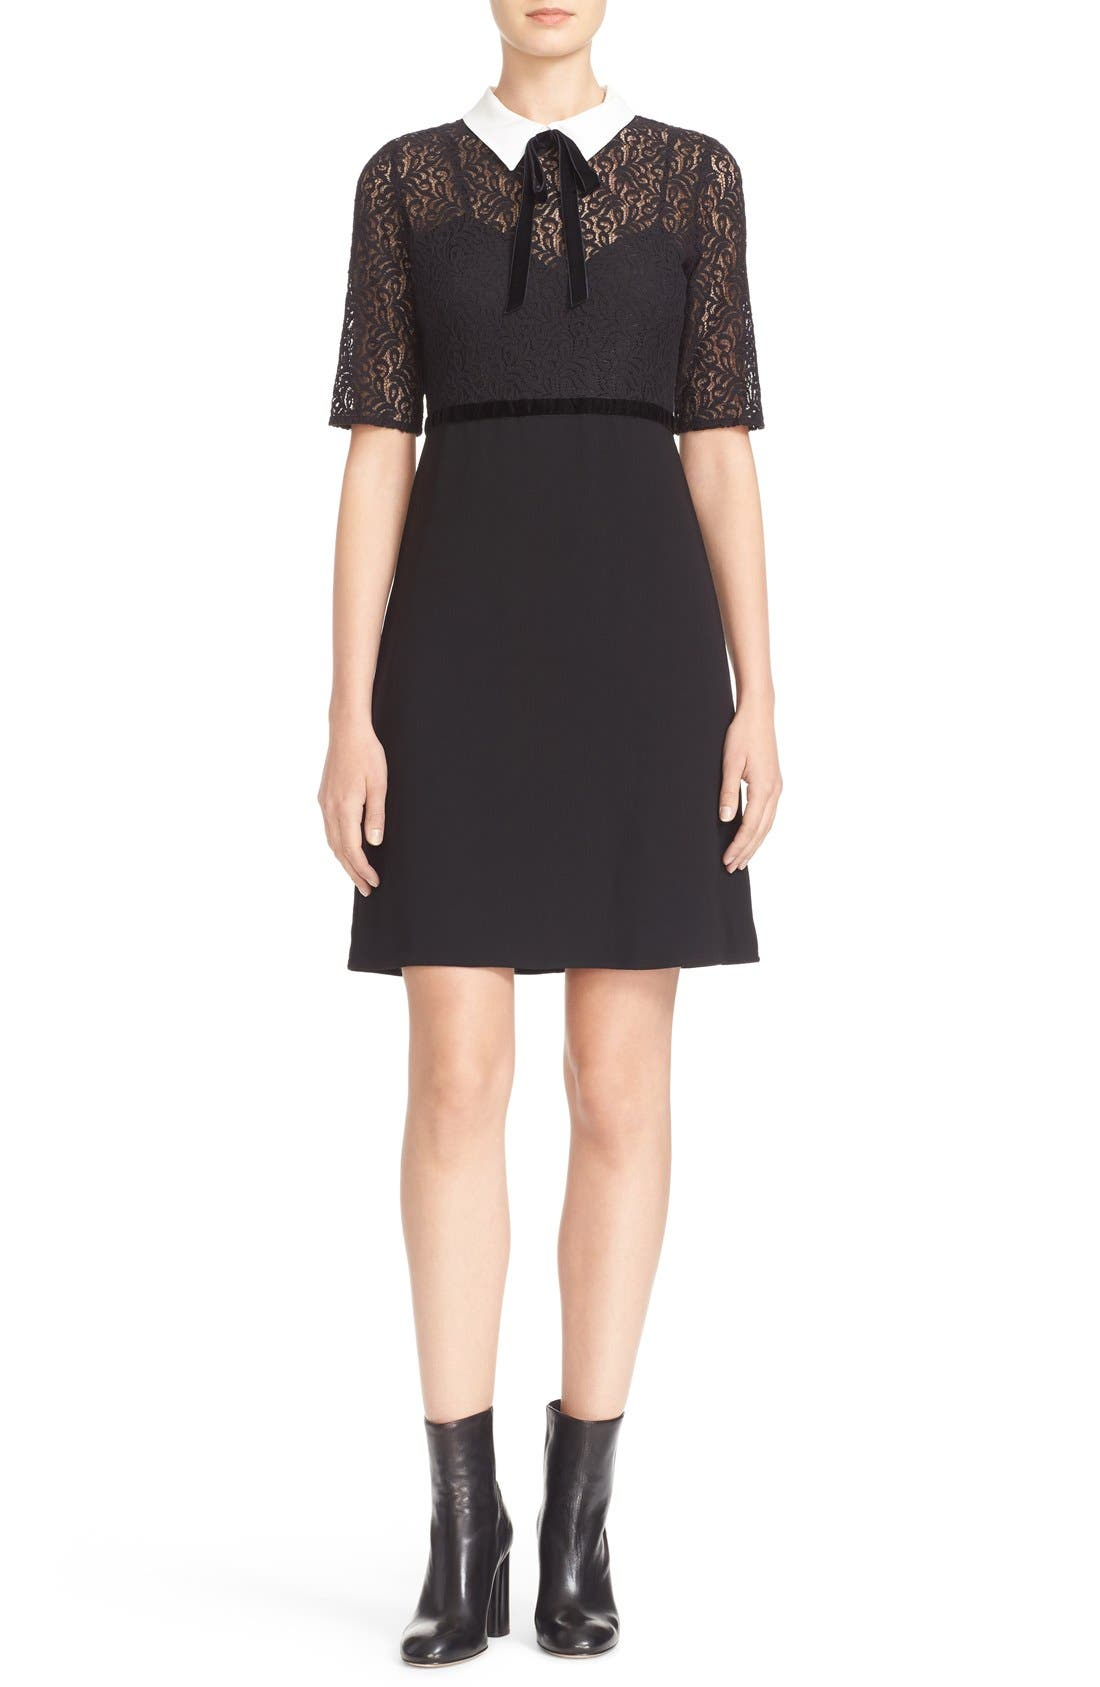 Alternate Image 1 Selected - The Kooples Lace Overlay Crepe Dress